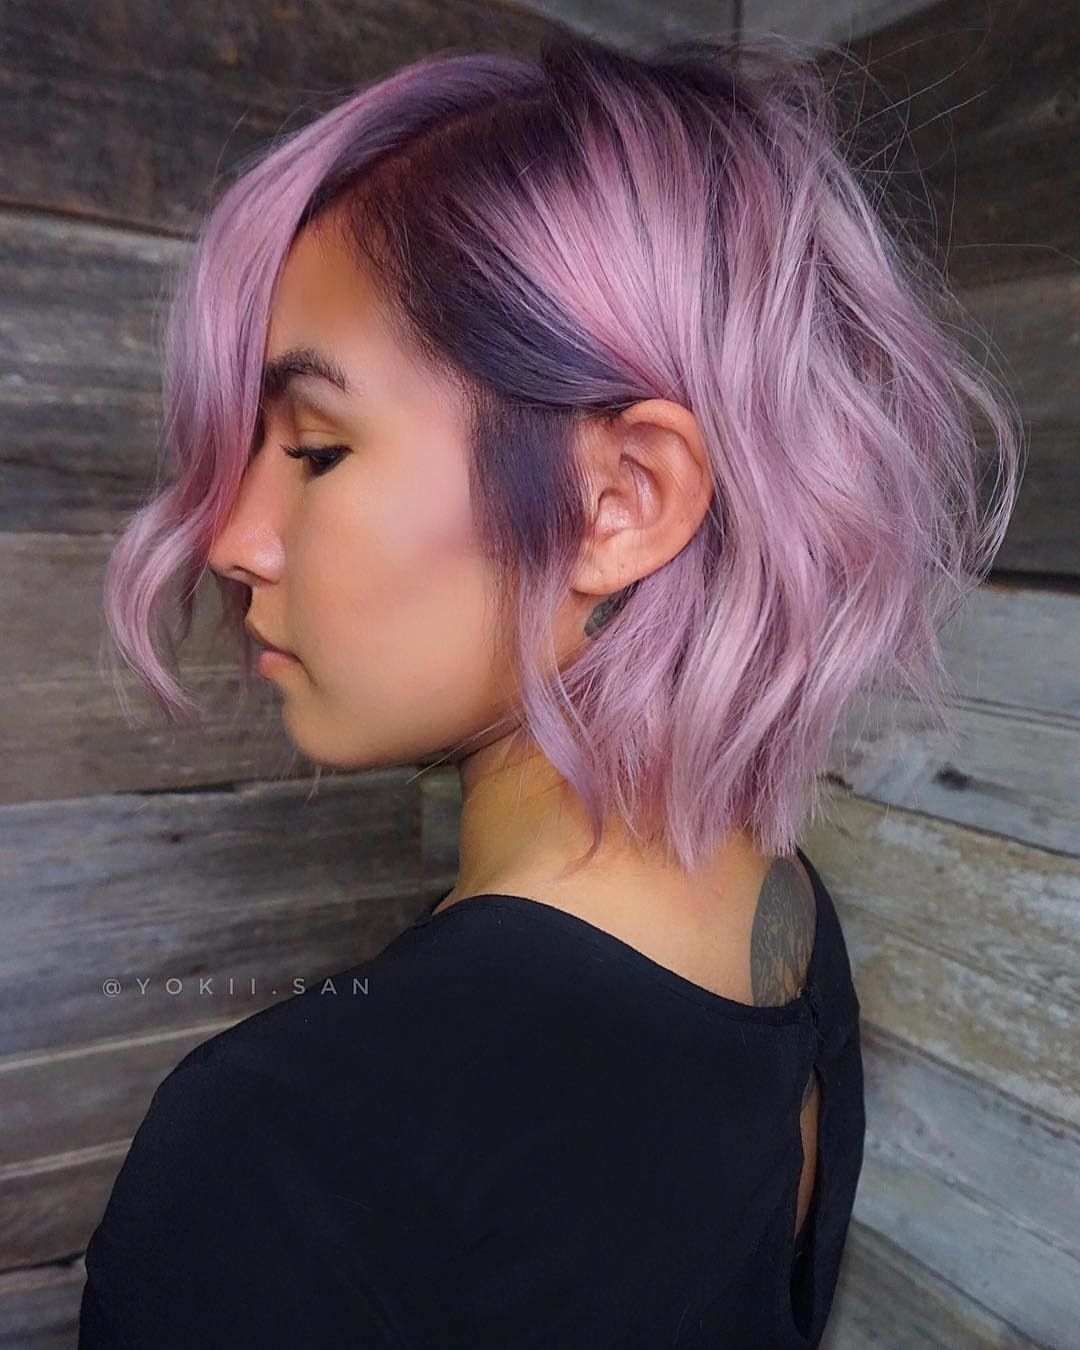 Purple Roots And Pink Hair For The Win Hair Color By Yokii San Haircolor Color Pink Purple Bala Dark Purple Hair Hair Color Purple Cool Hair Color